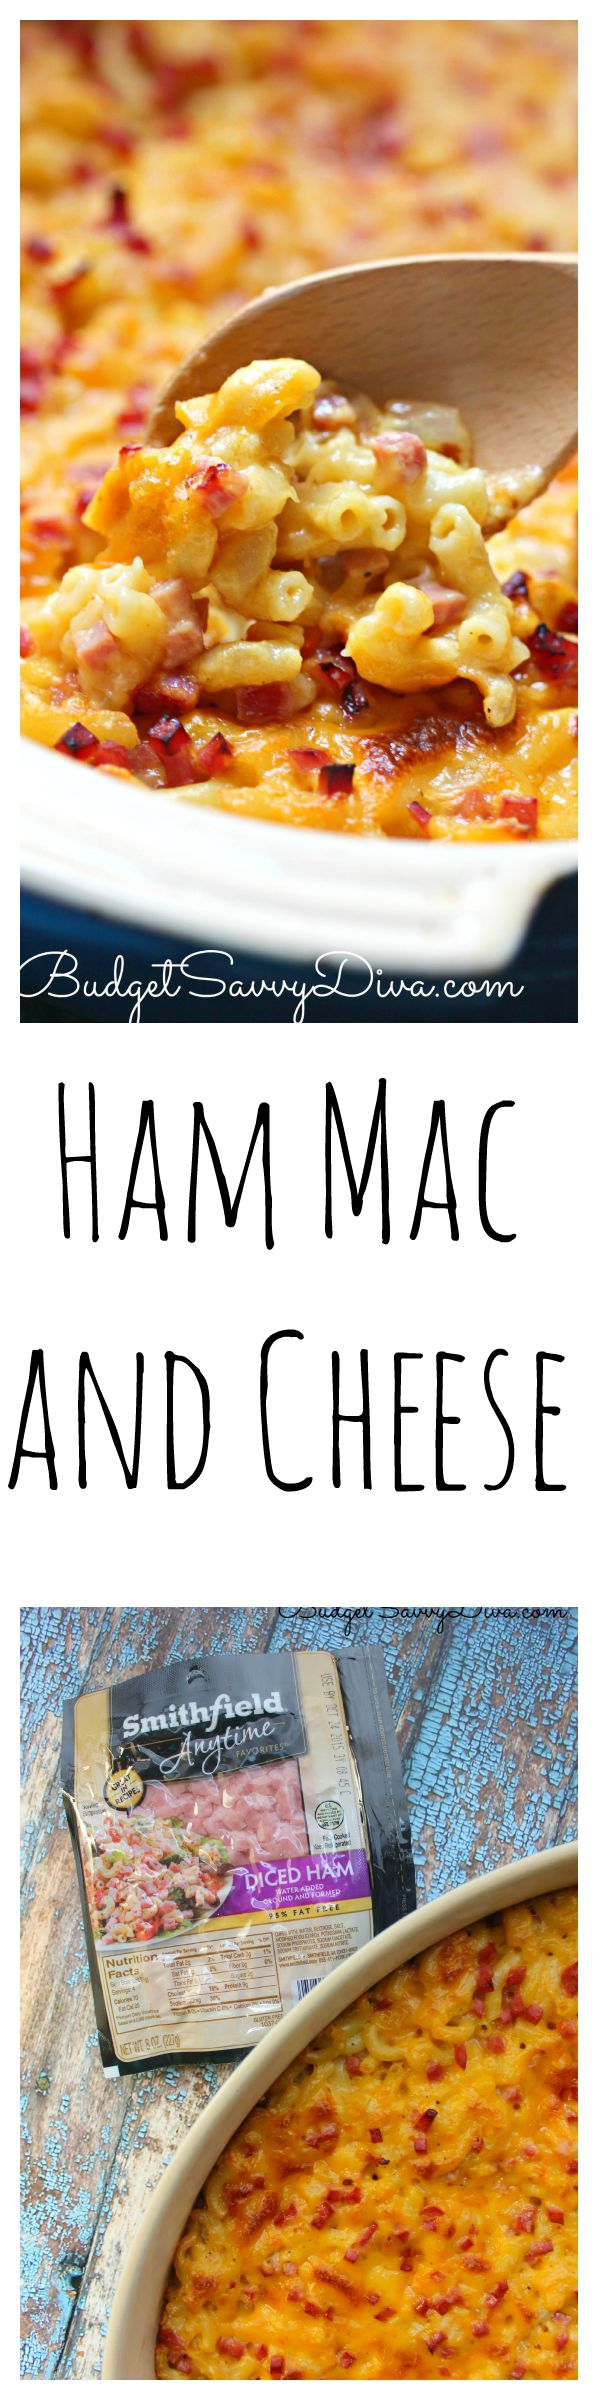 ham mac and cheese   FINAL